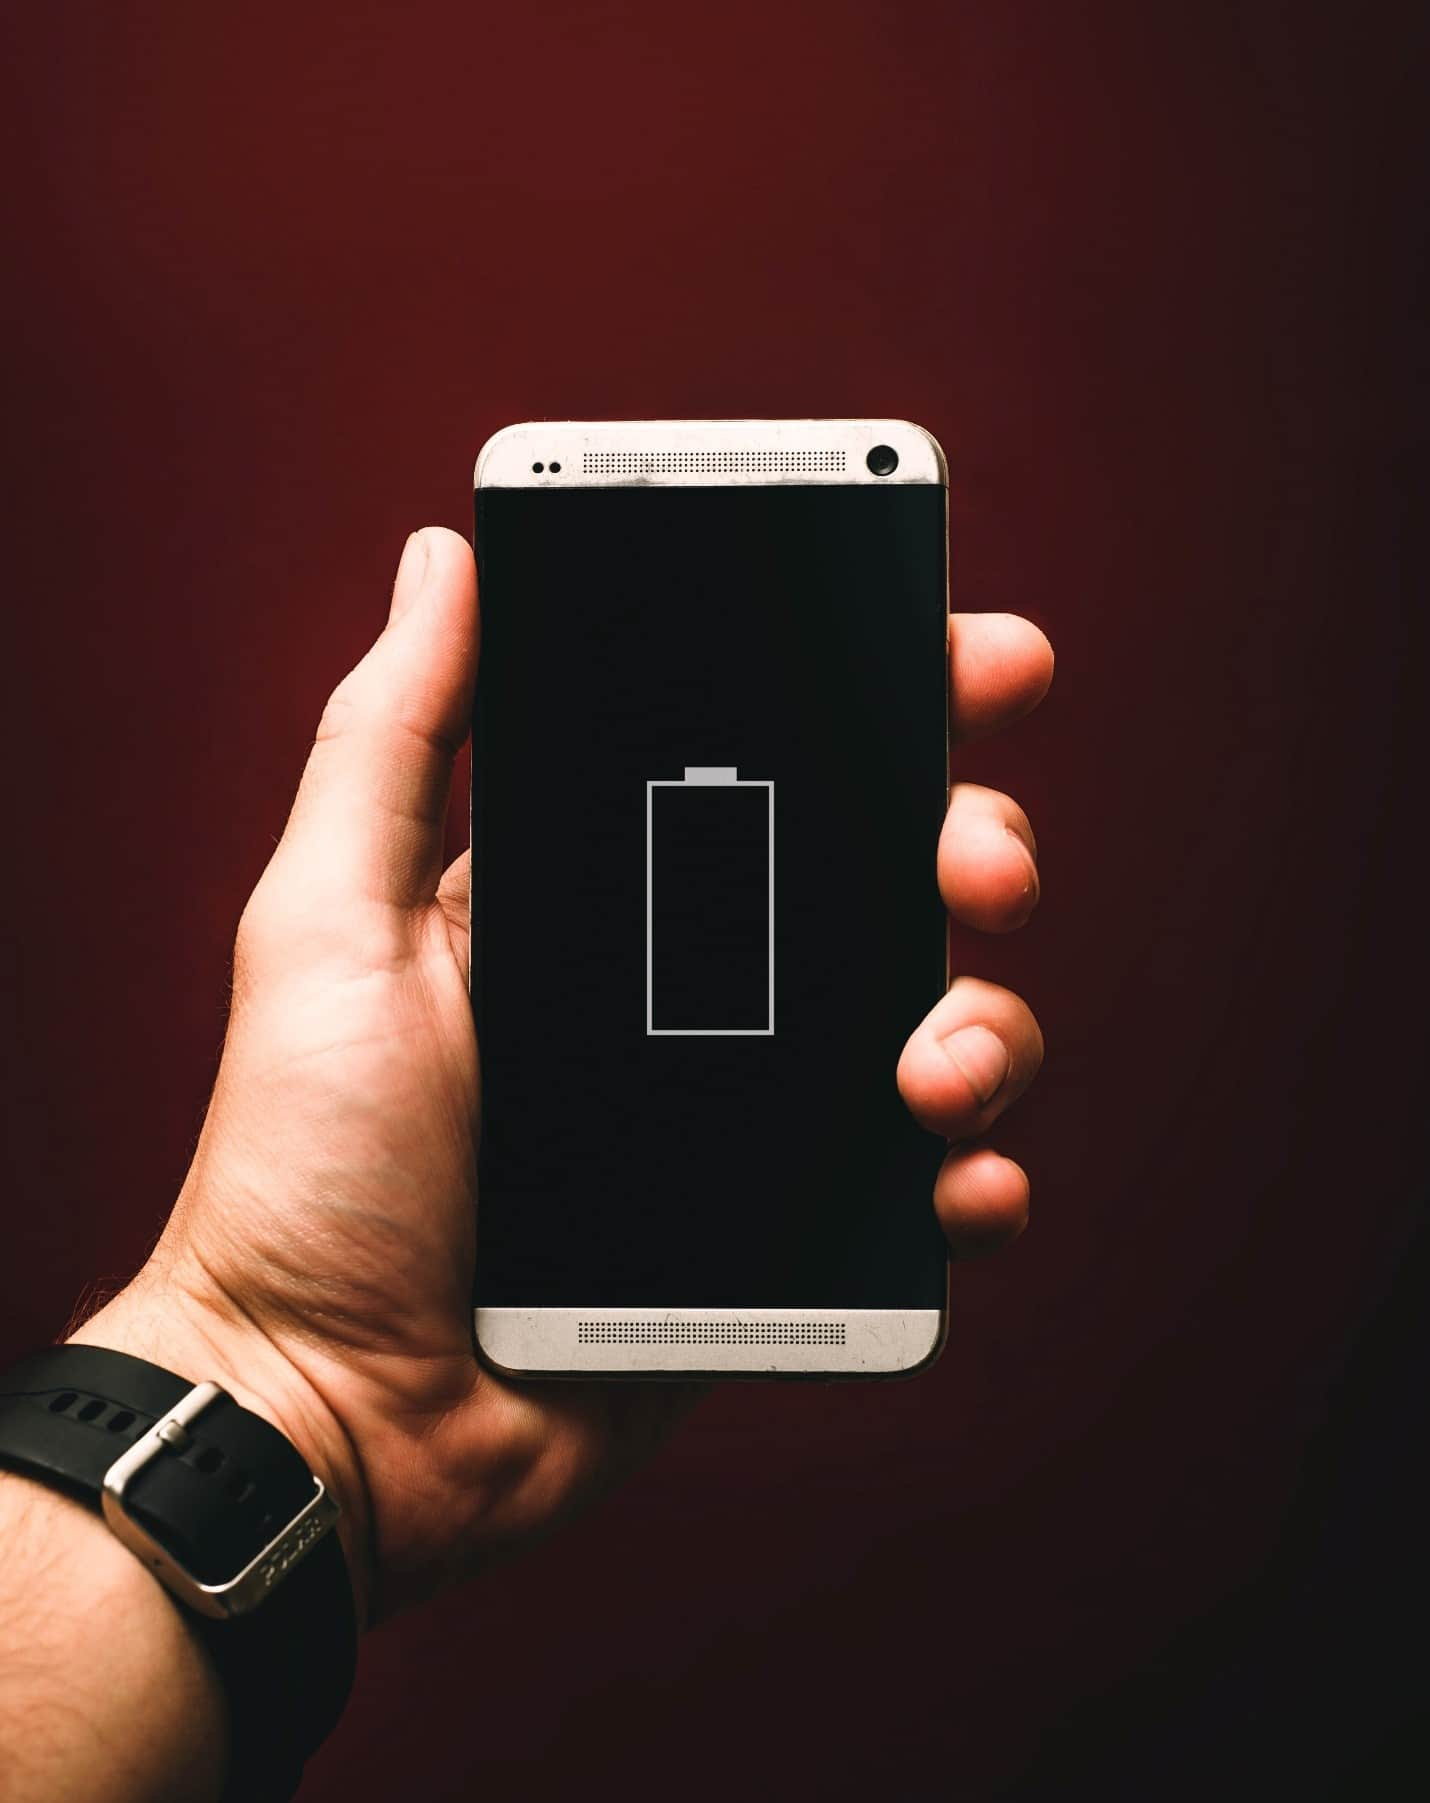 content/pt-br/images/repository/isc/2020/9910/prolong-your-smartphone-battery-lifespan-1.jpg